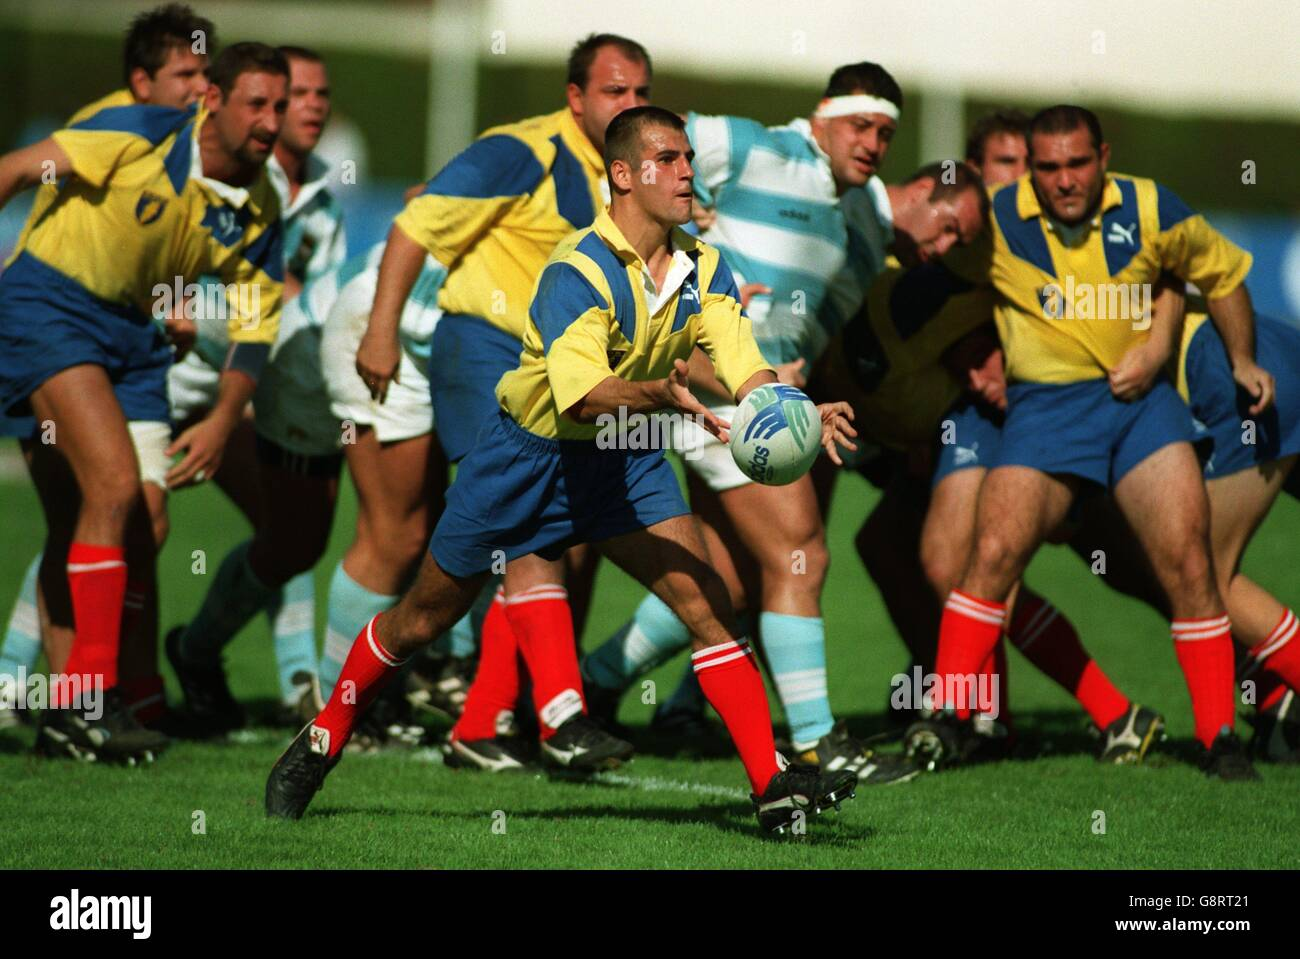 Rugby Union - Coupe Latine de France - Argentina v Romania - Stock Image